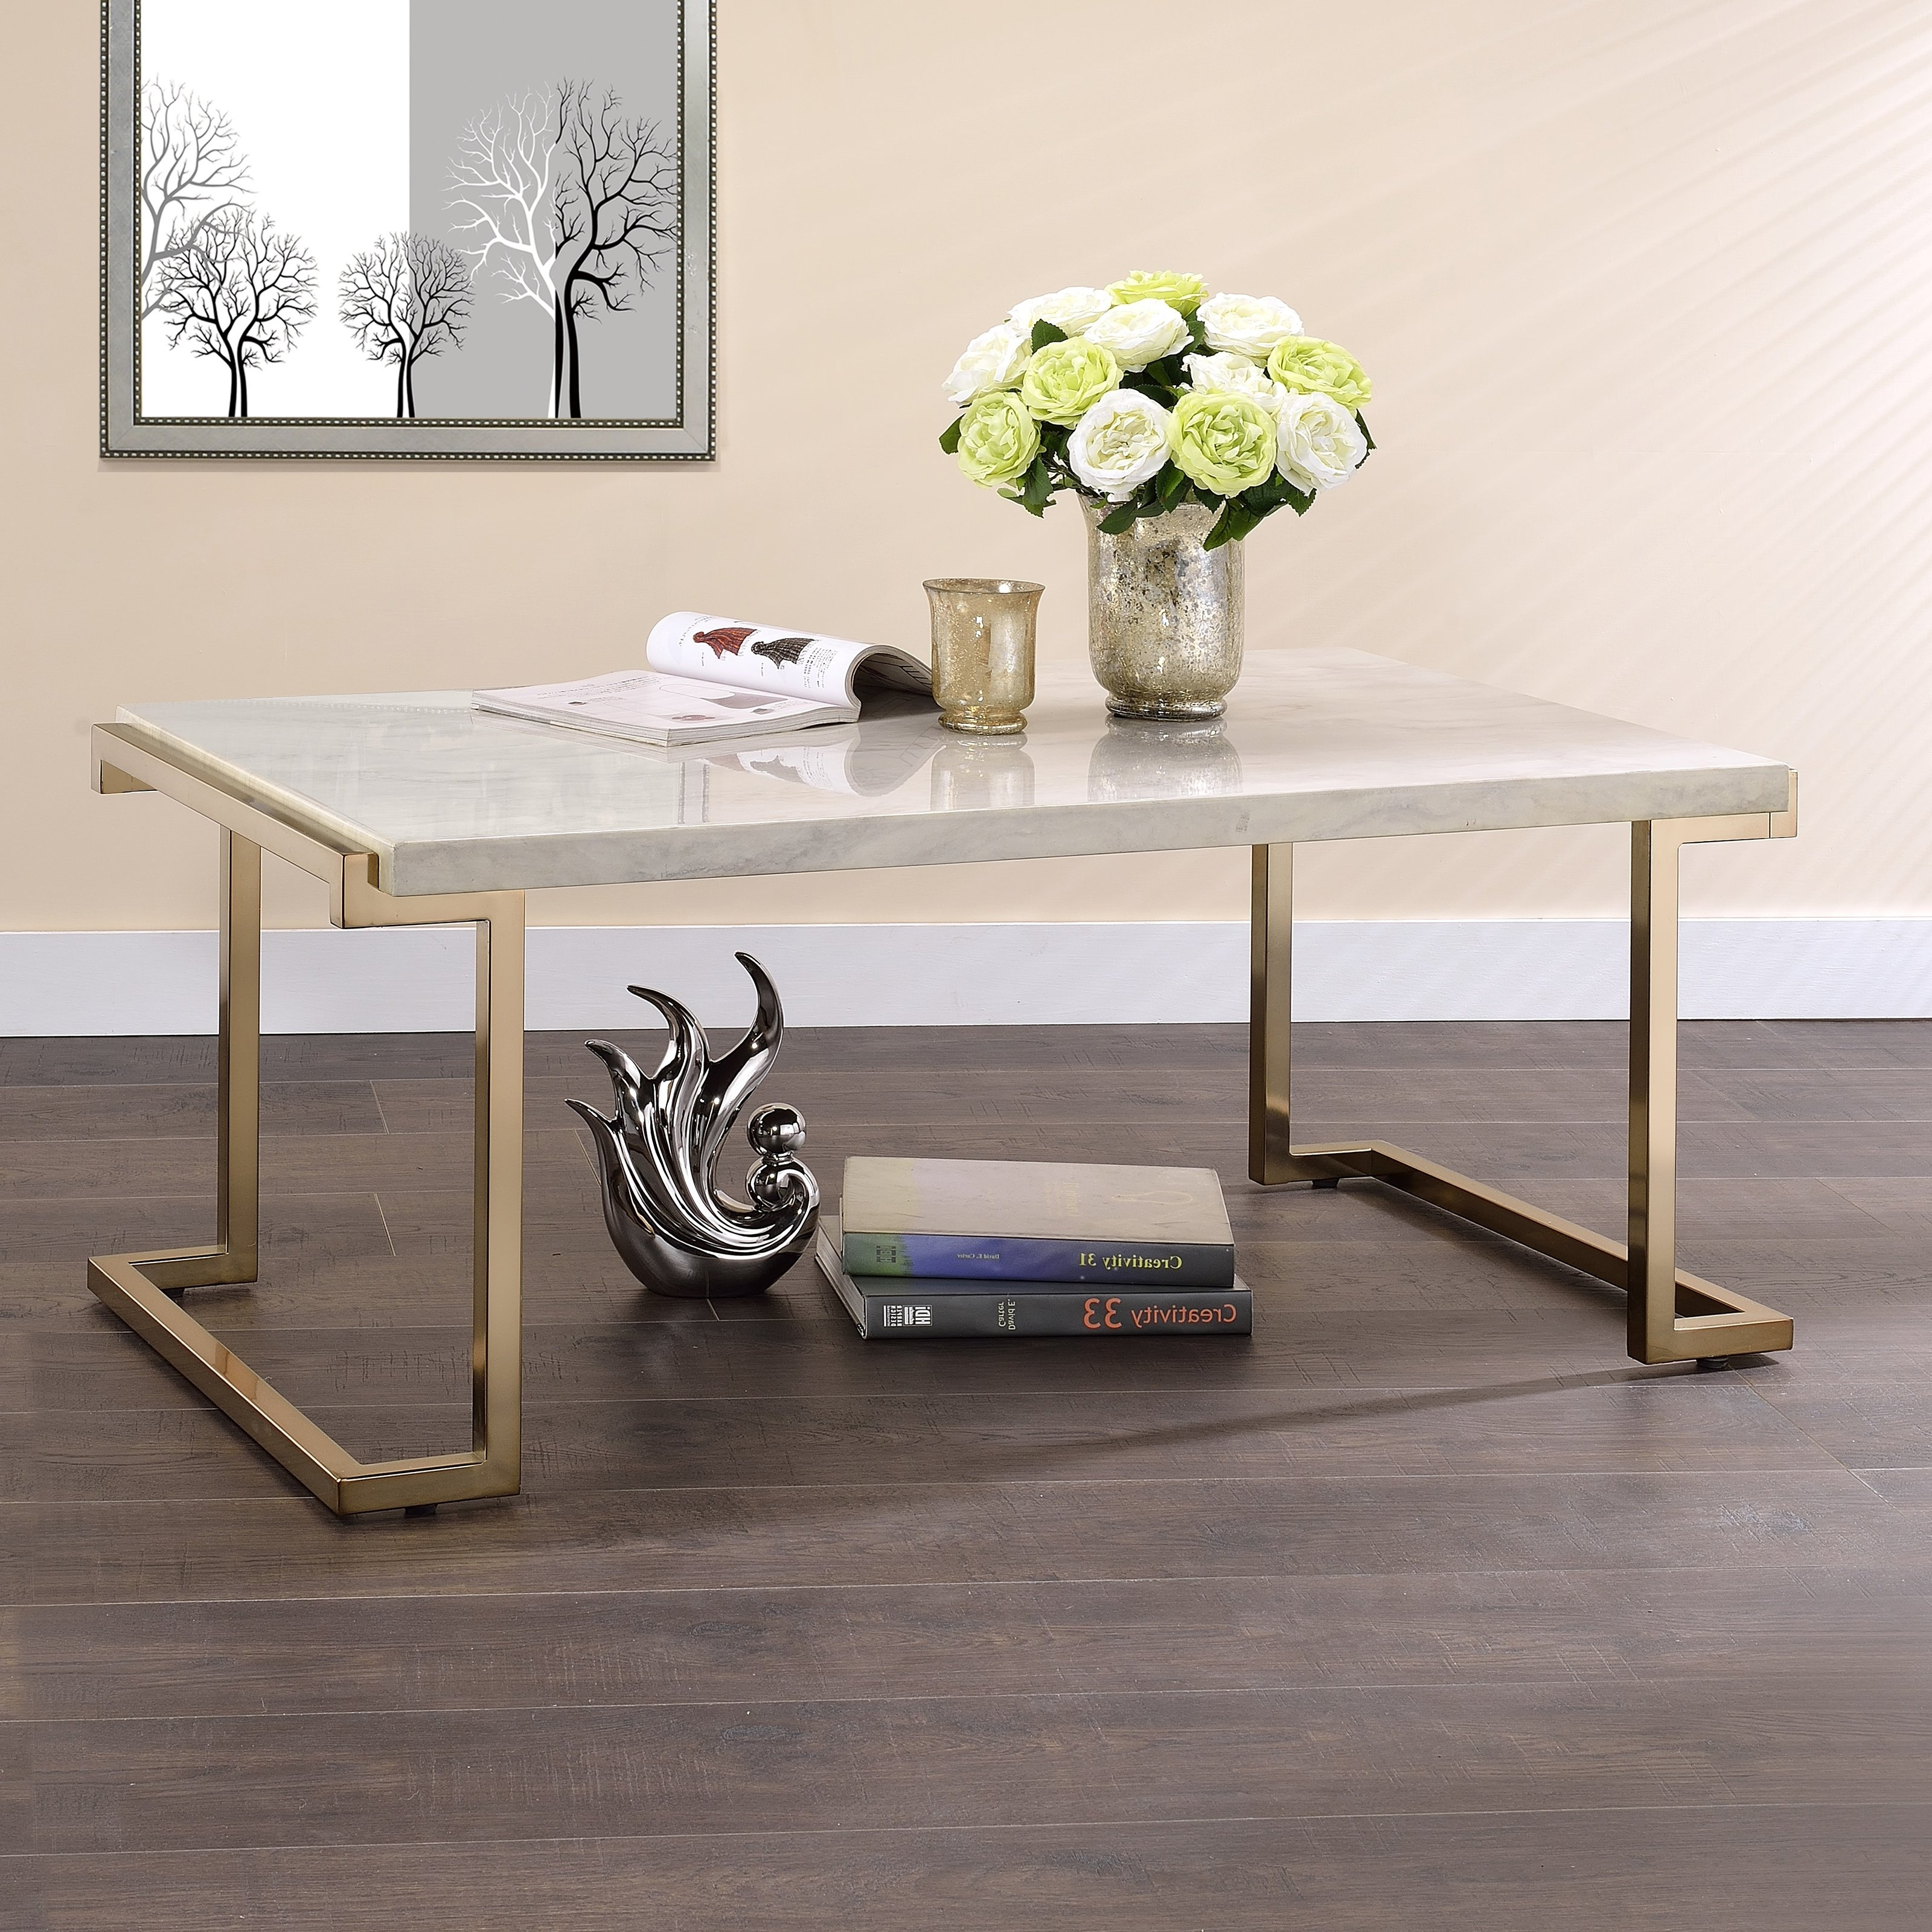 Nola Glass Rectangular Coffee Table With Storage Shelf, Cocktail Within Widely Used Nola Cocktail Tables (View 11 of 20)